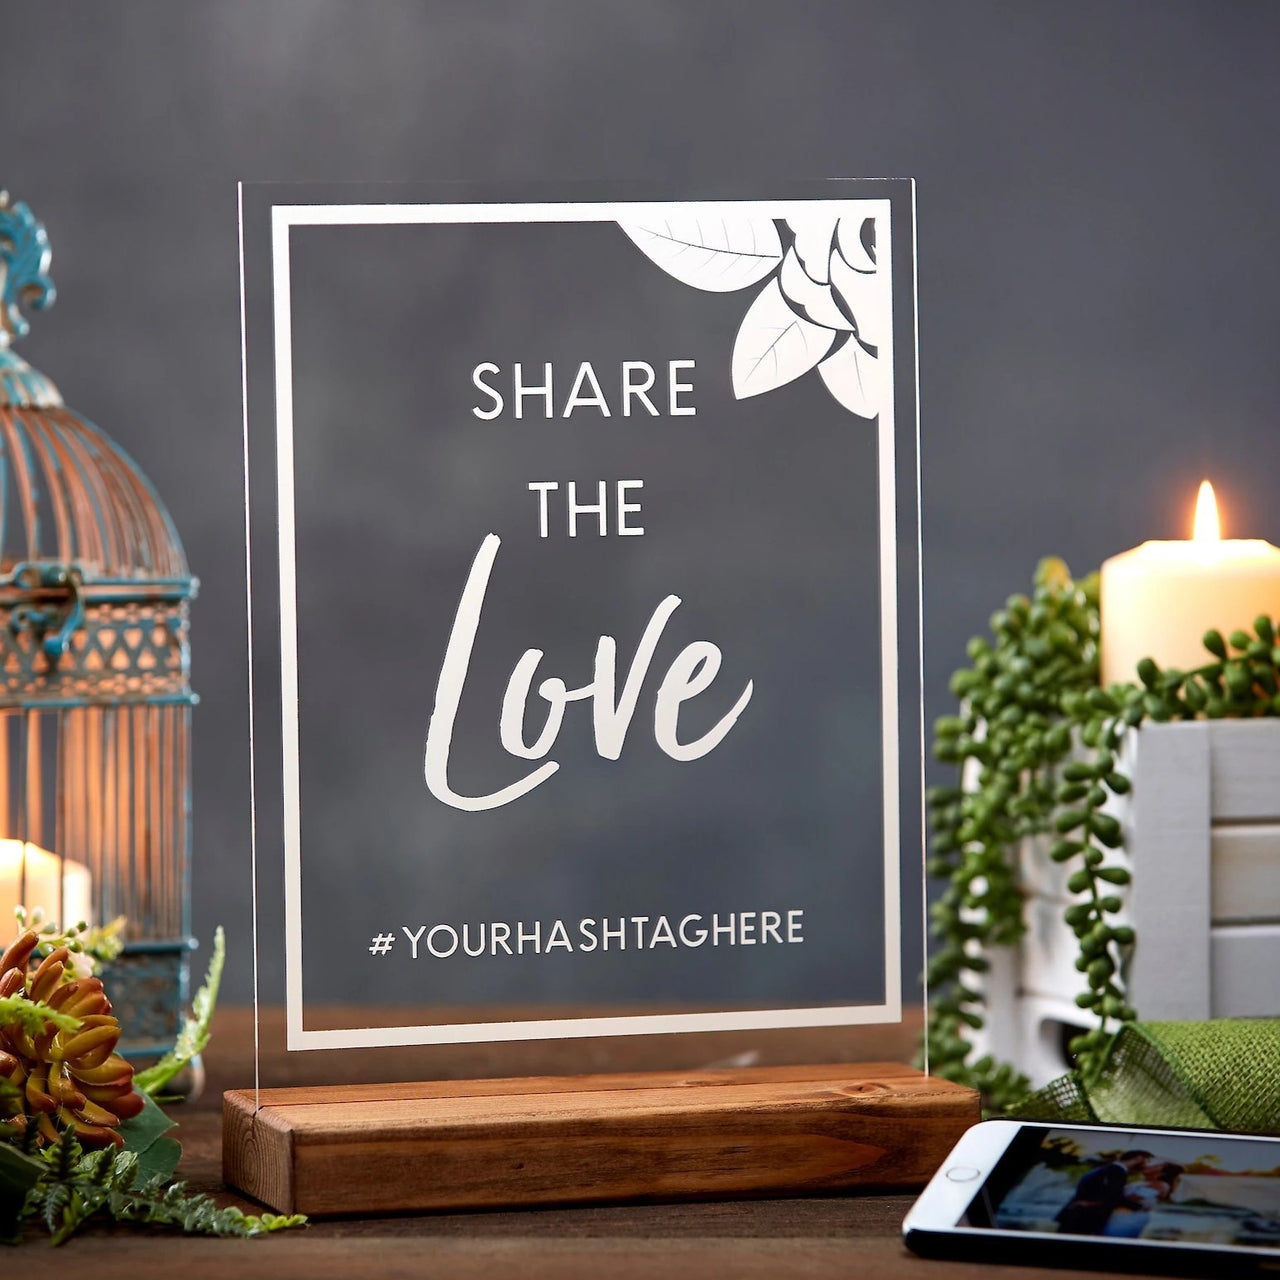 Share the Love Custom Wedding Hashtag Sign - Rich Design Co